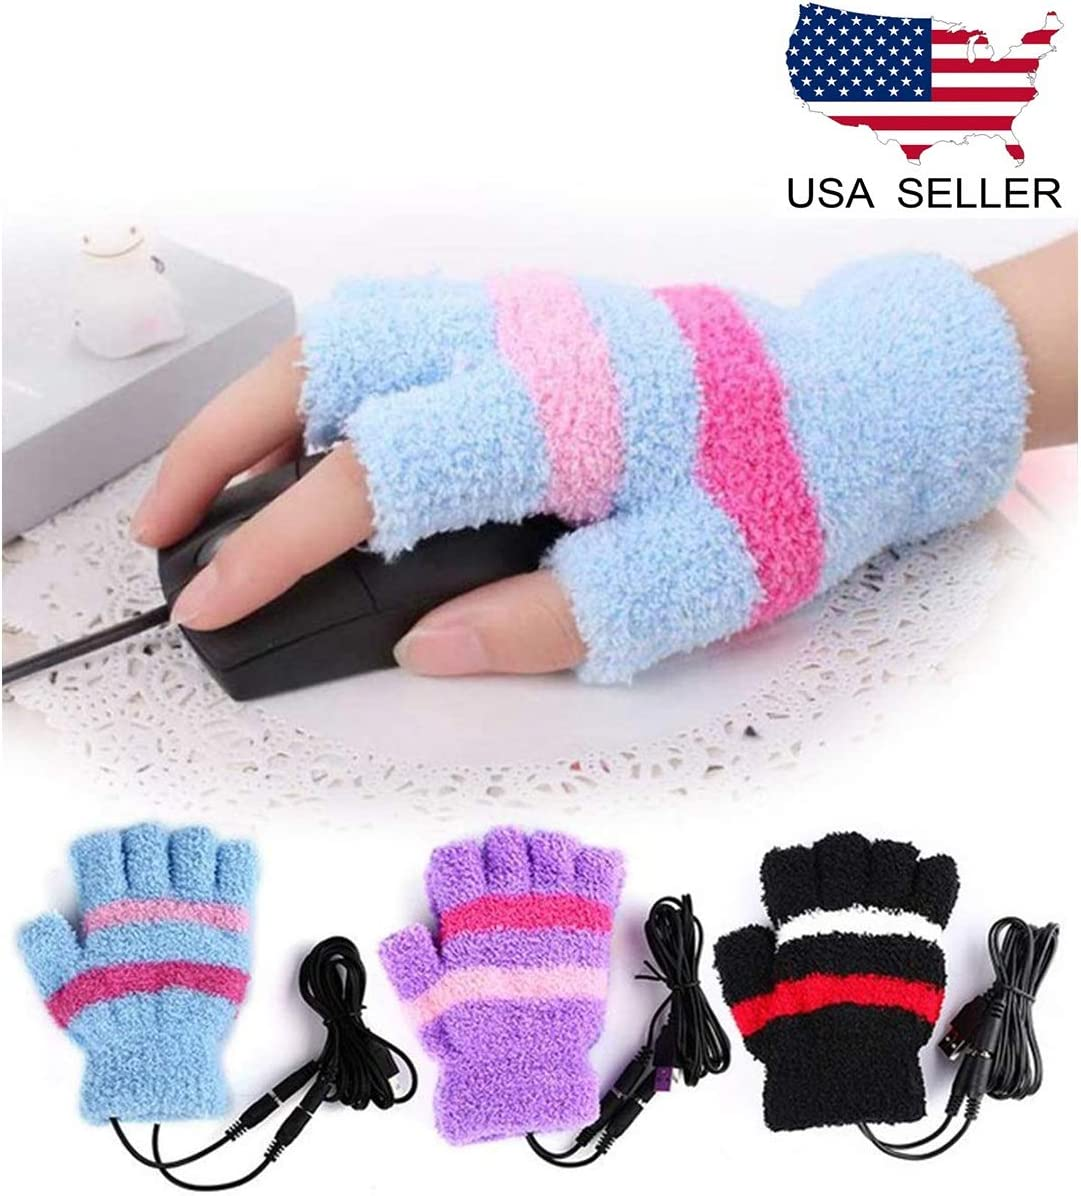 HoFire USB Heating Winter Gloves Women Hand Warm Gloves USB Heater Fingerless Warmer Mitten Gloves